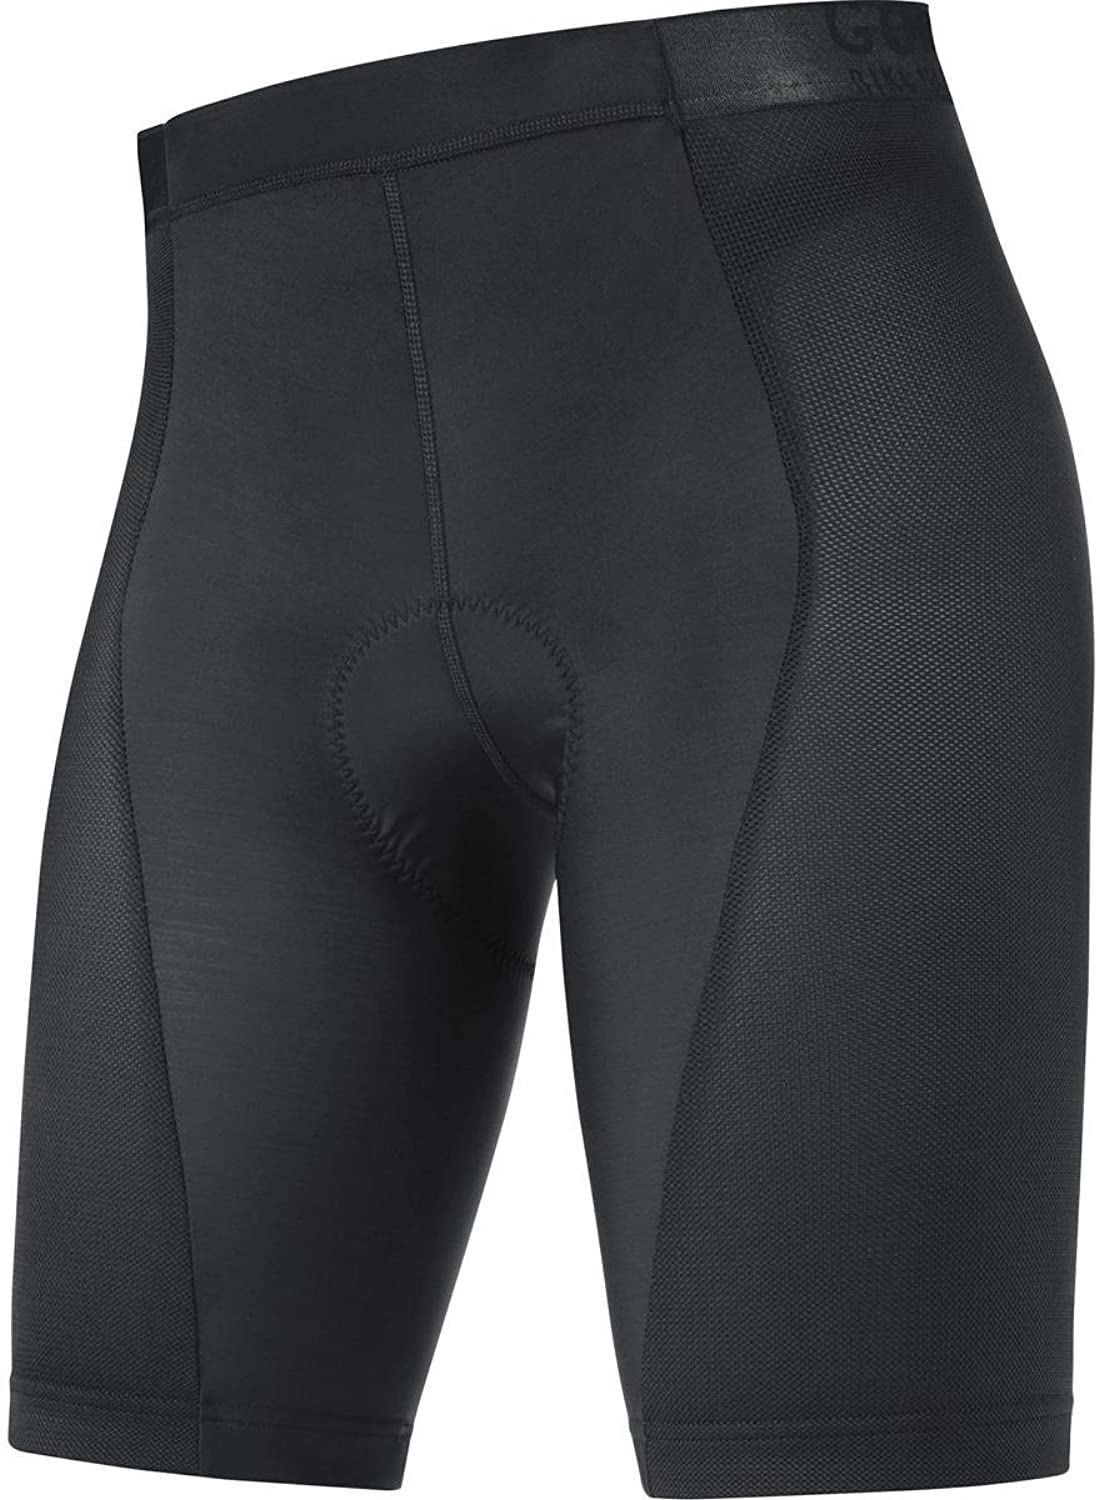 GORE Bike WEAR Women's Short Inner Cycling Tights, Seat Padding, GORE Selected Fabrics, Element Inner Lady Tights Pro+, TINPOL